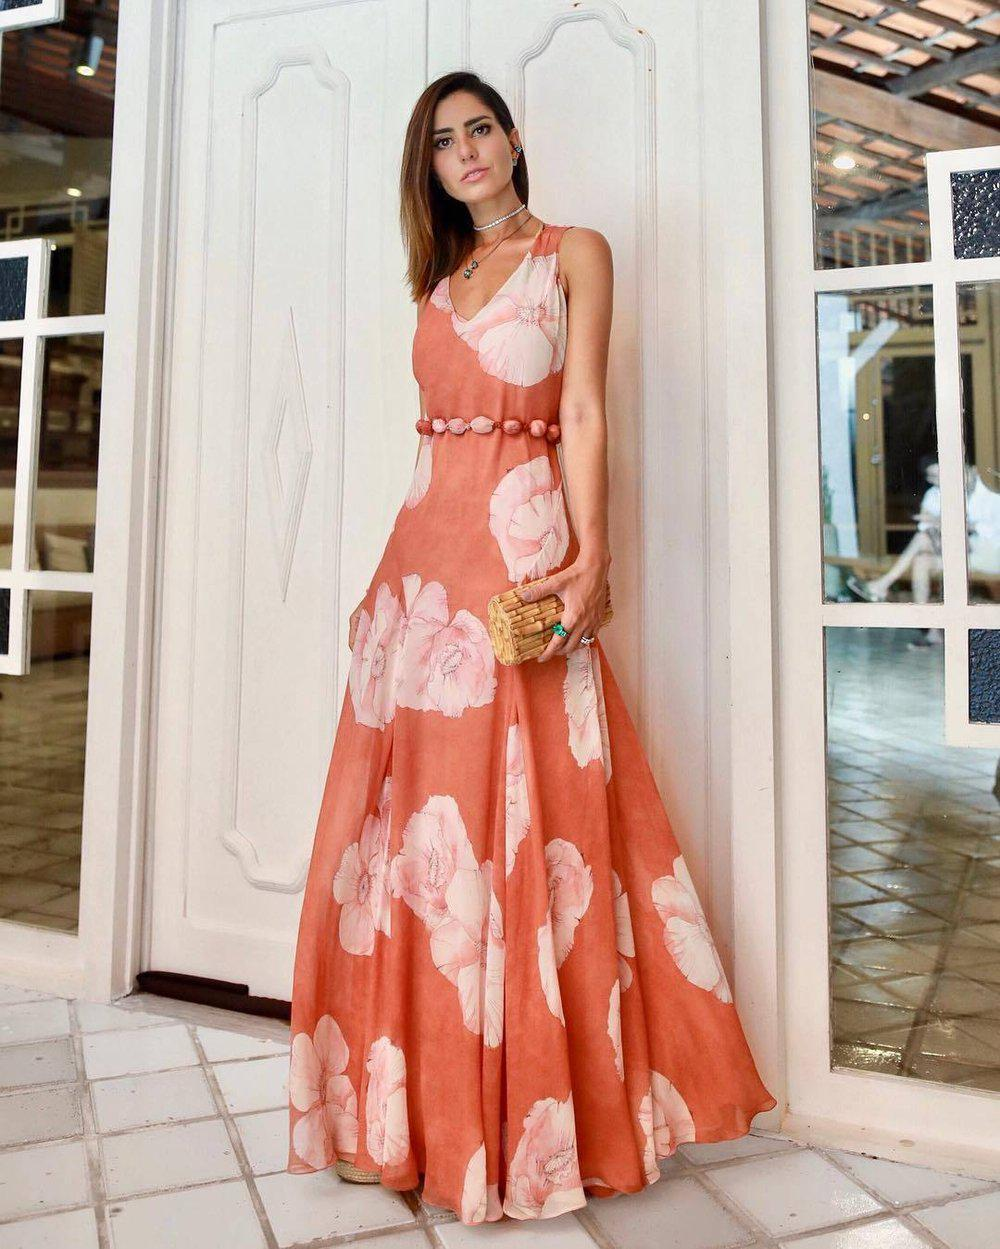 Ficcia Romantic Orange Flower Printed Round Neck Sleeveless Fairy Dress